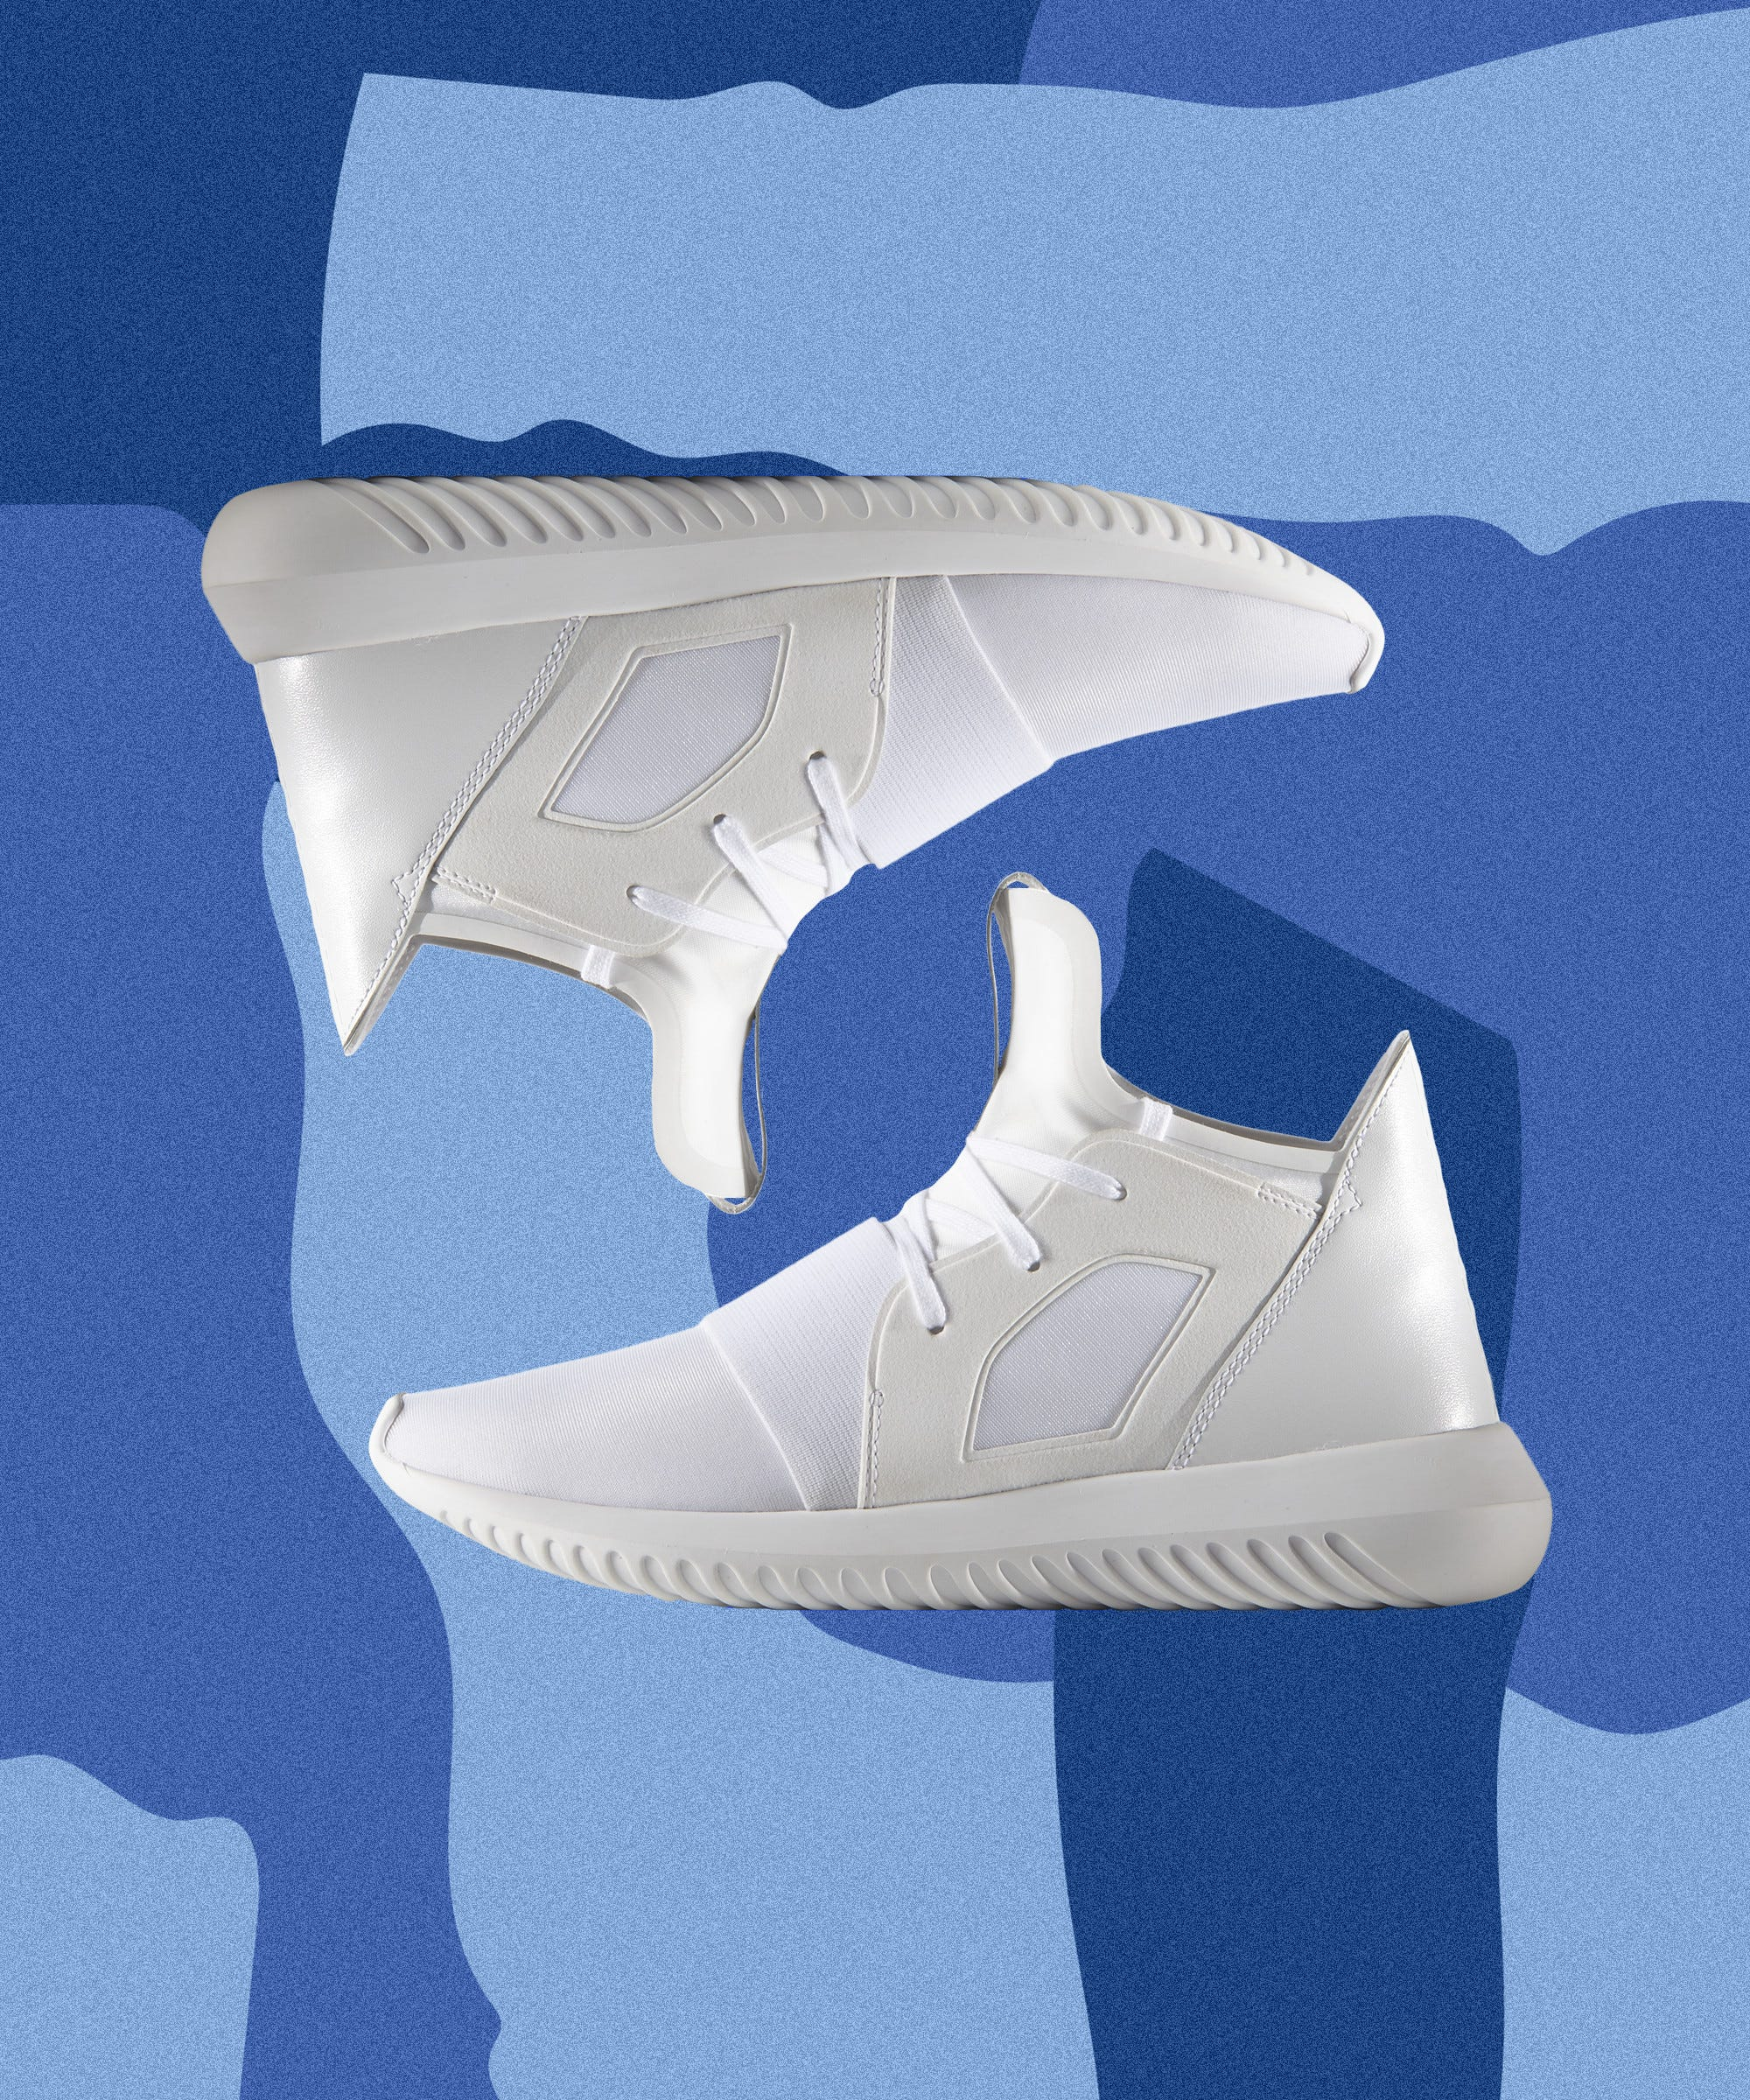 AdidasOriginals_Galloway-Mary_MarketCollage_20160302_Ioeber